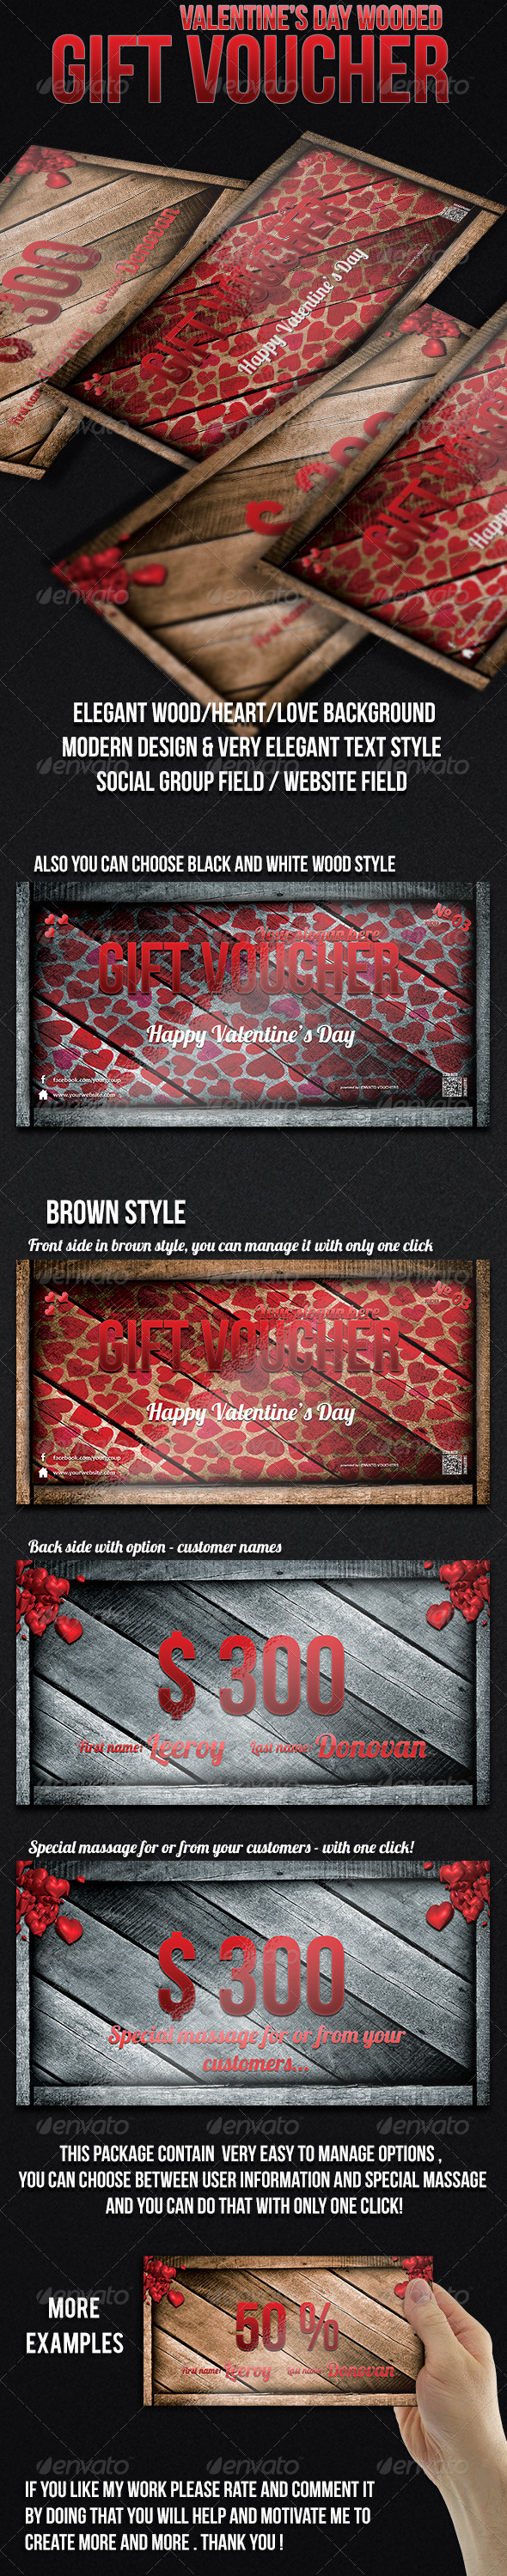 Valentine's Day Gift Voucher - Cards & Invites Print Templates